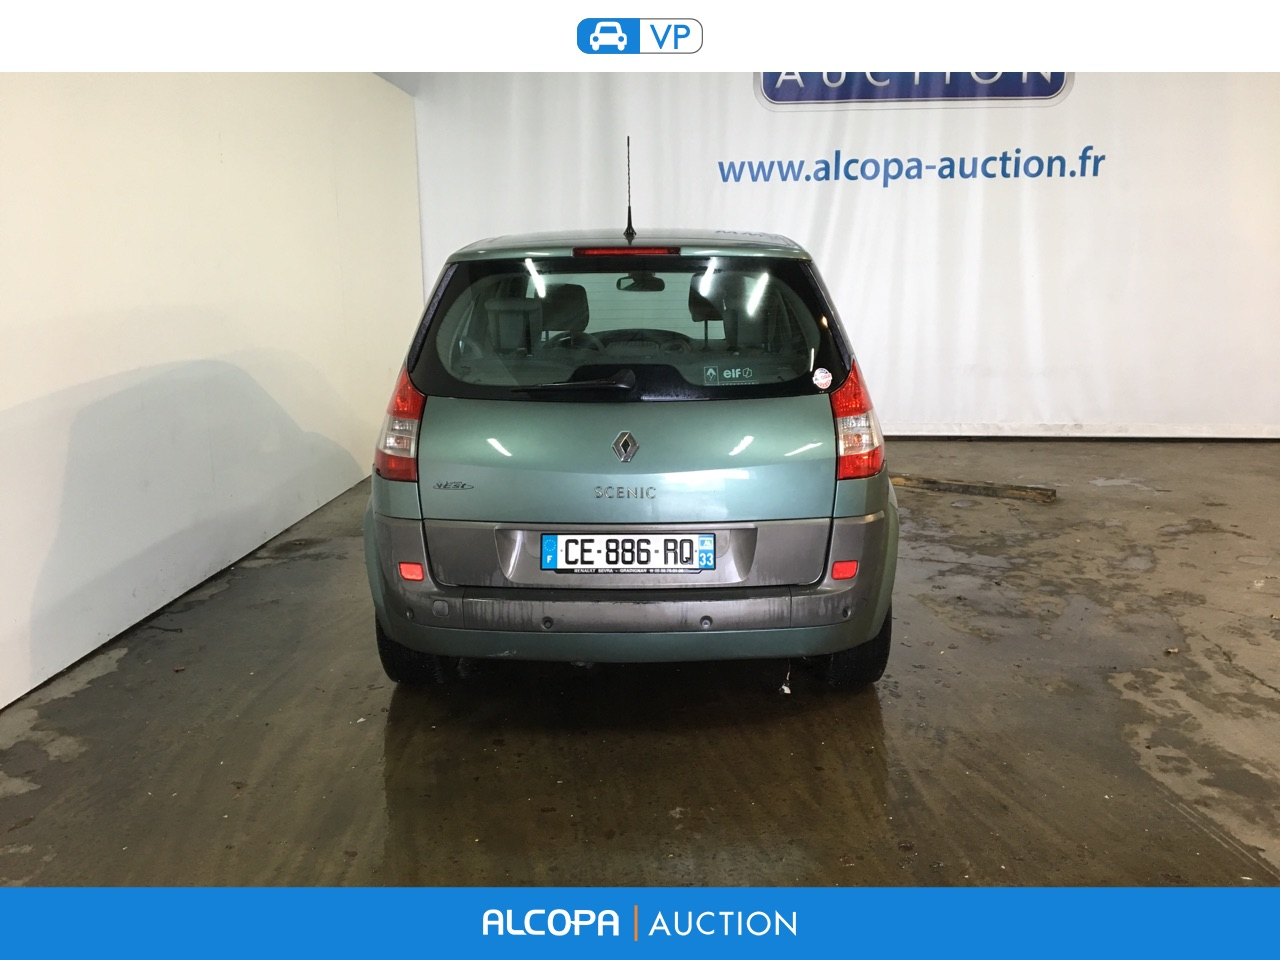 renault scenic scenic 1 5 dci105 luxe privilege tours alcopa auction. Black Bedroom Furniture Sets. Home Design Ideas